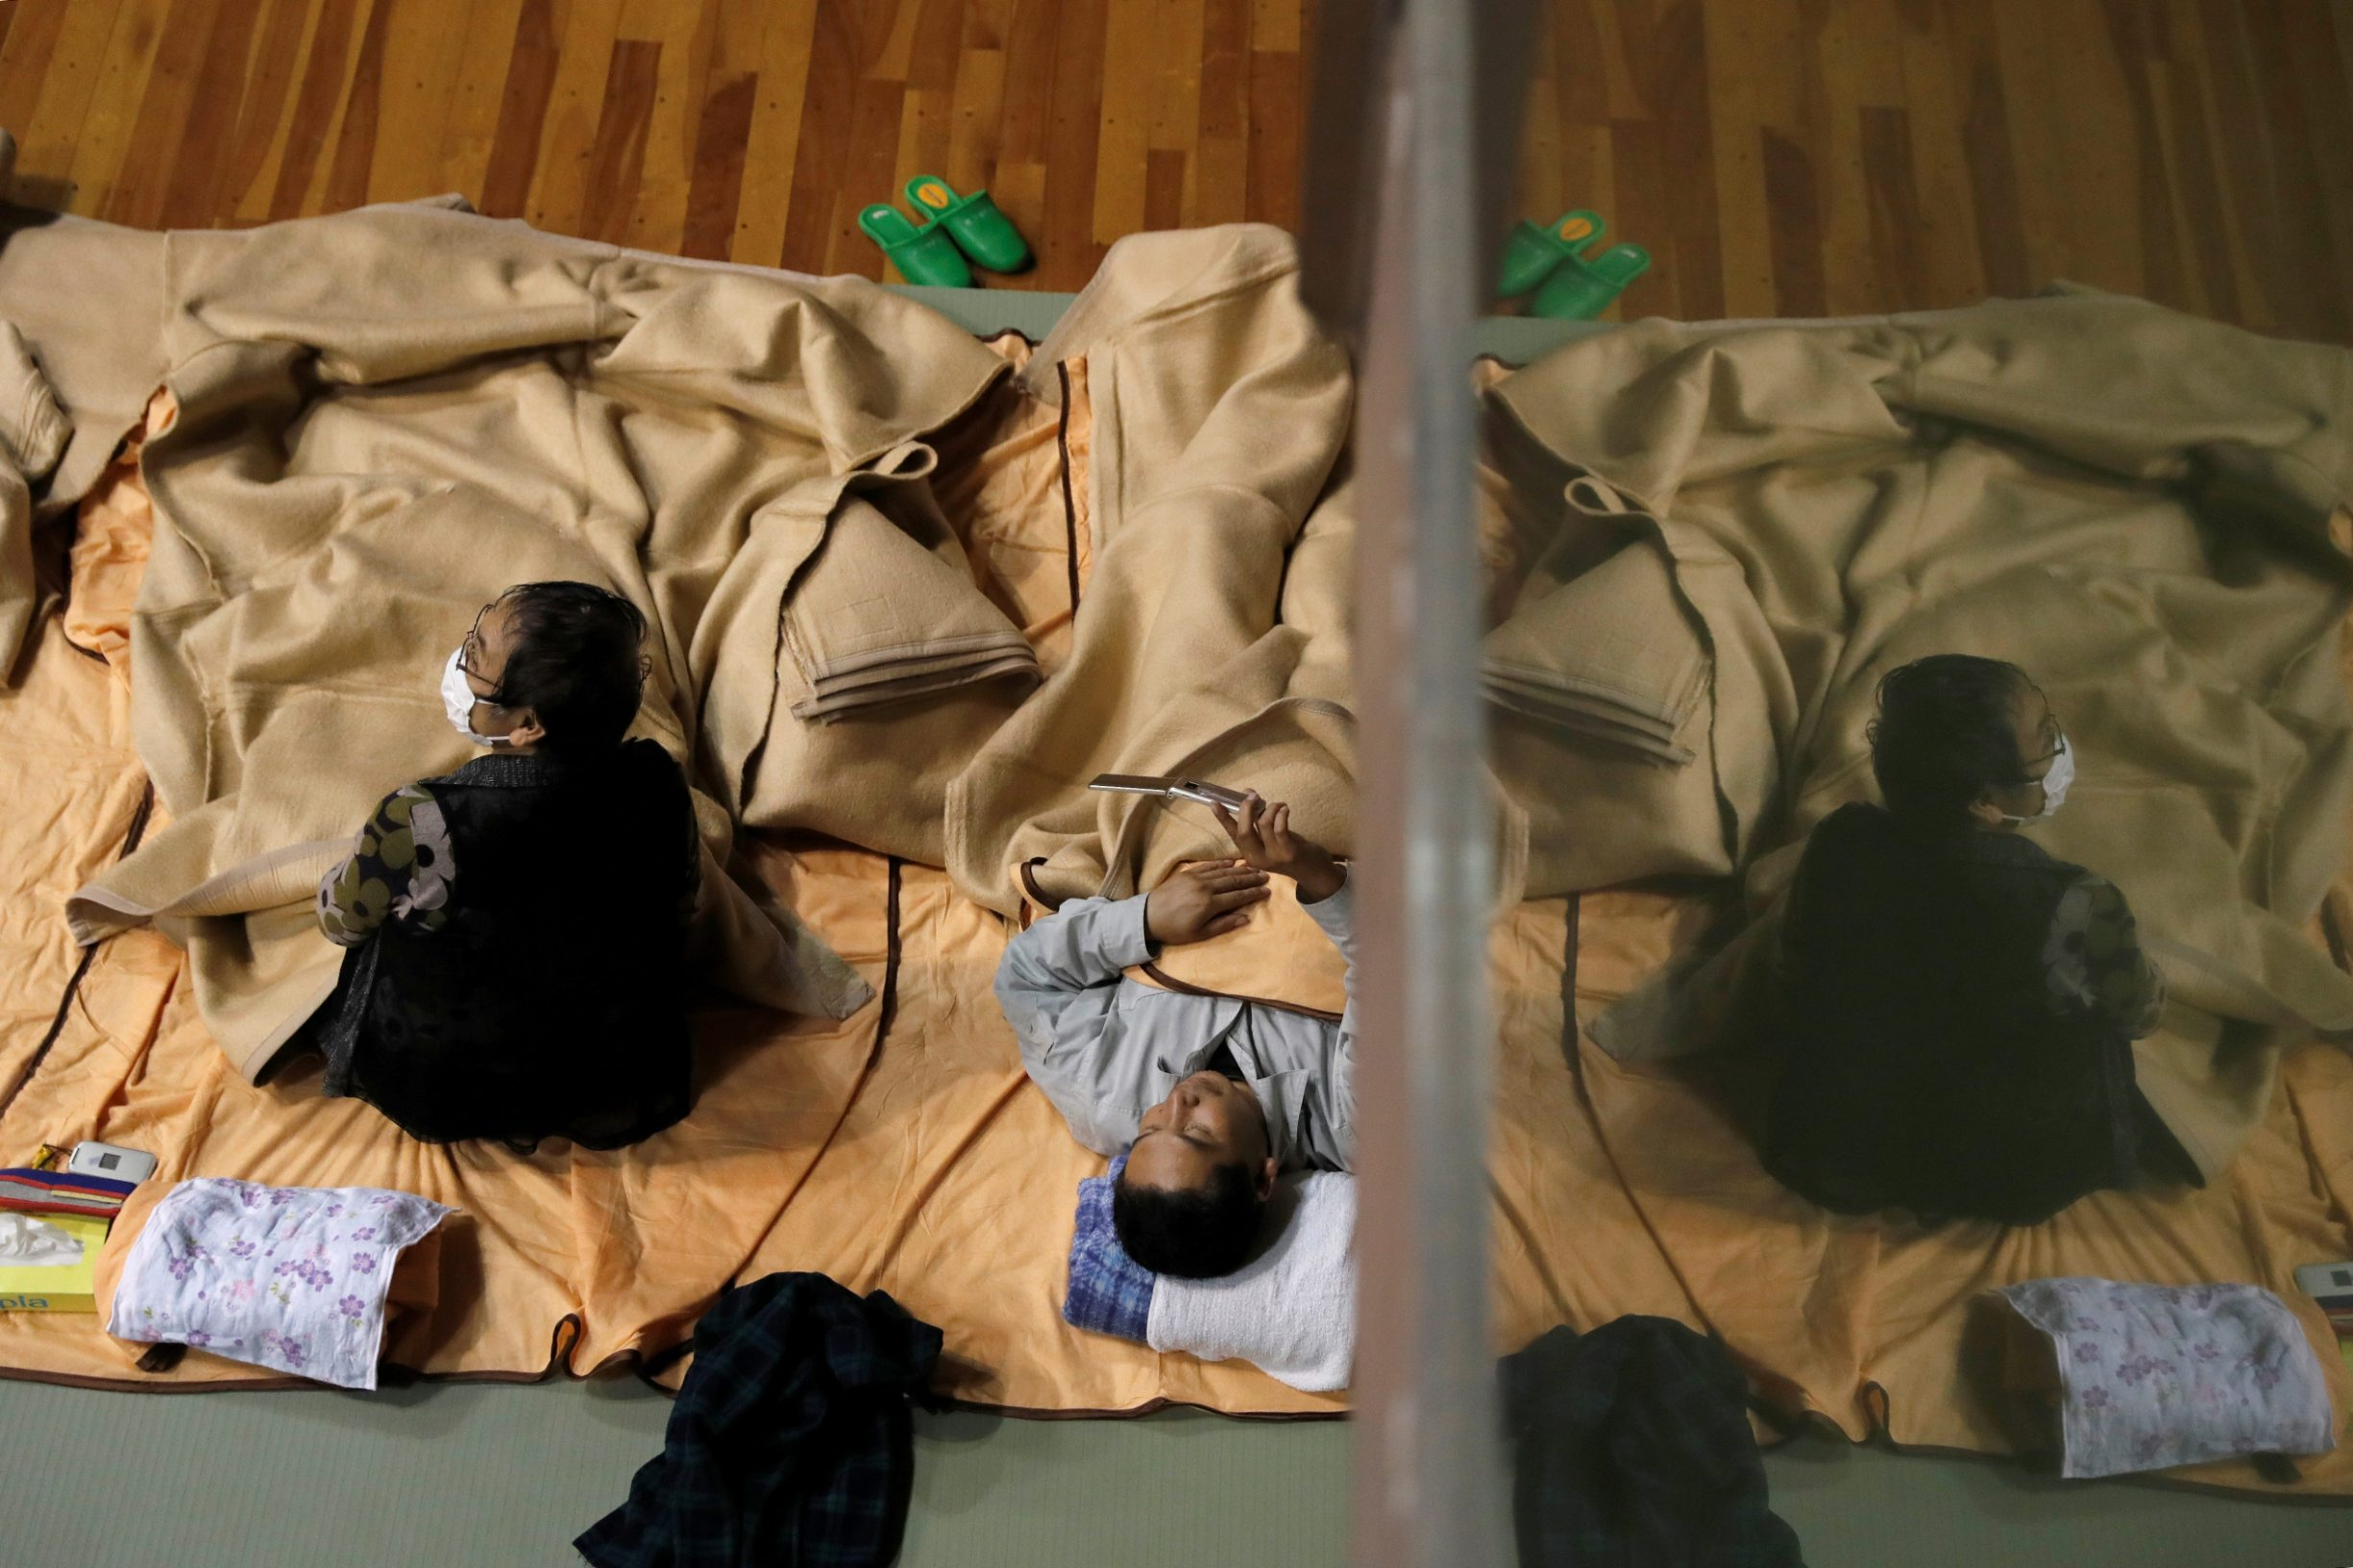 People rest in the evacuation centre for affected by the flood after Typhoon Hagibis in Nagano, Nagano Prefecture, Japan, October 13, 2019. REUTERS/Kim Kyung-Hoon